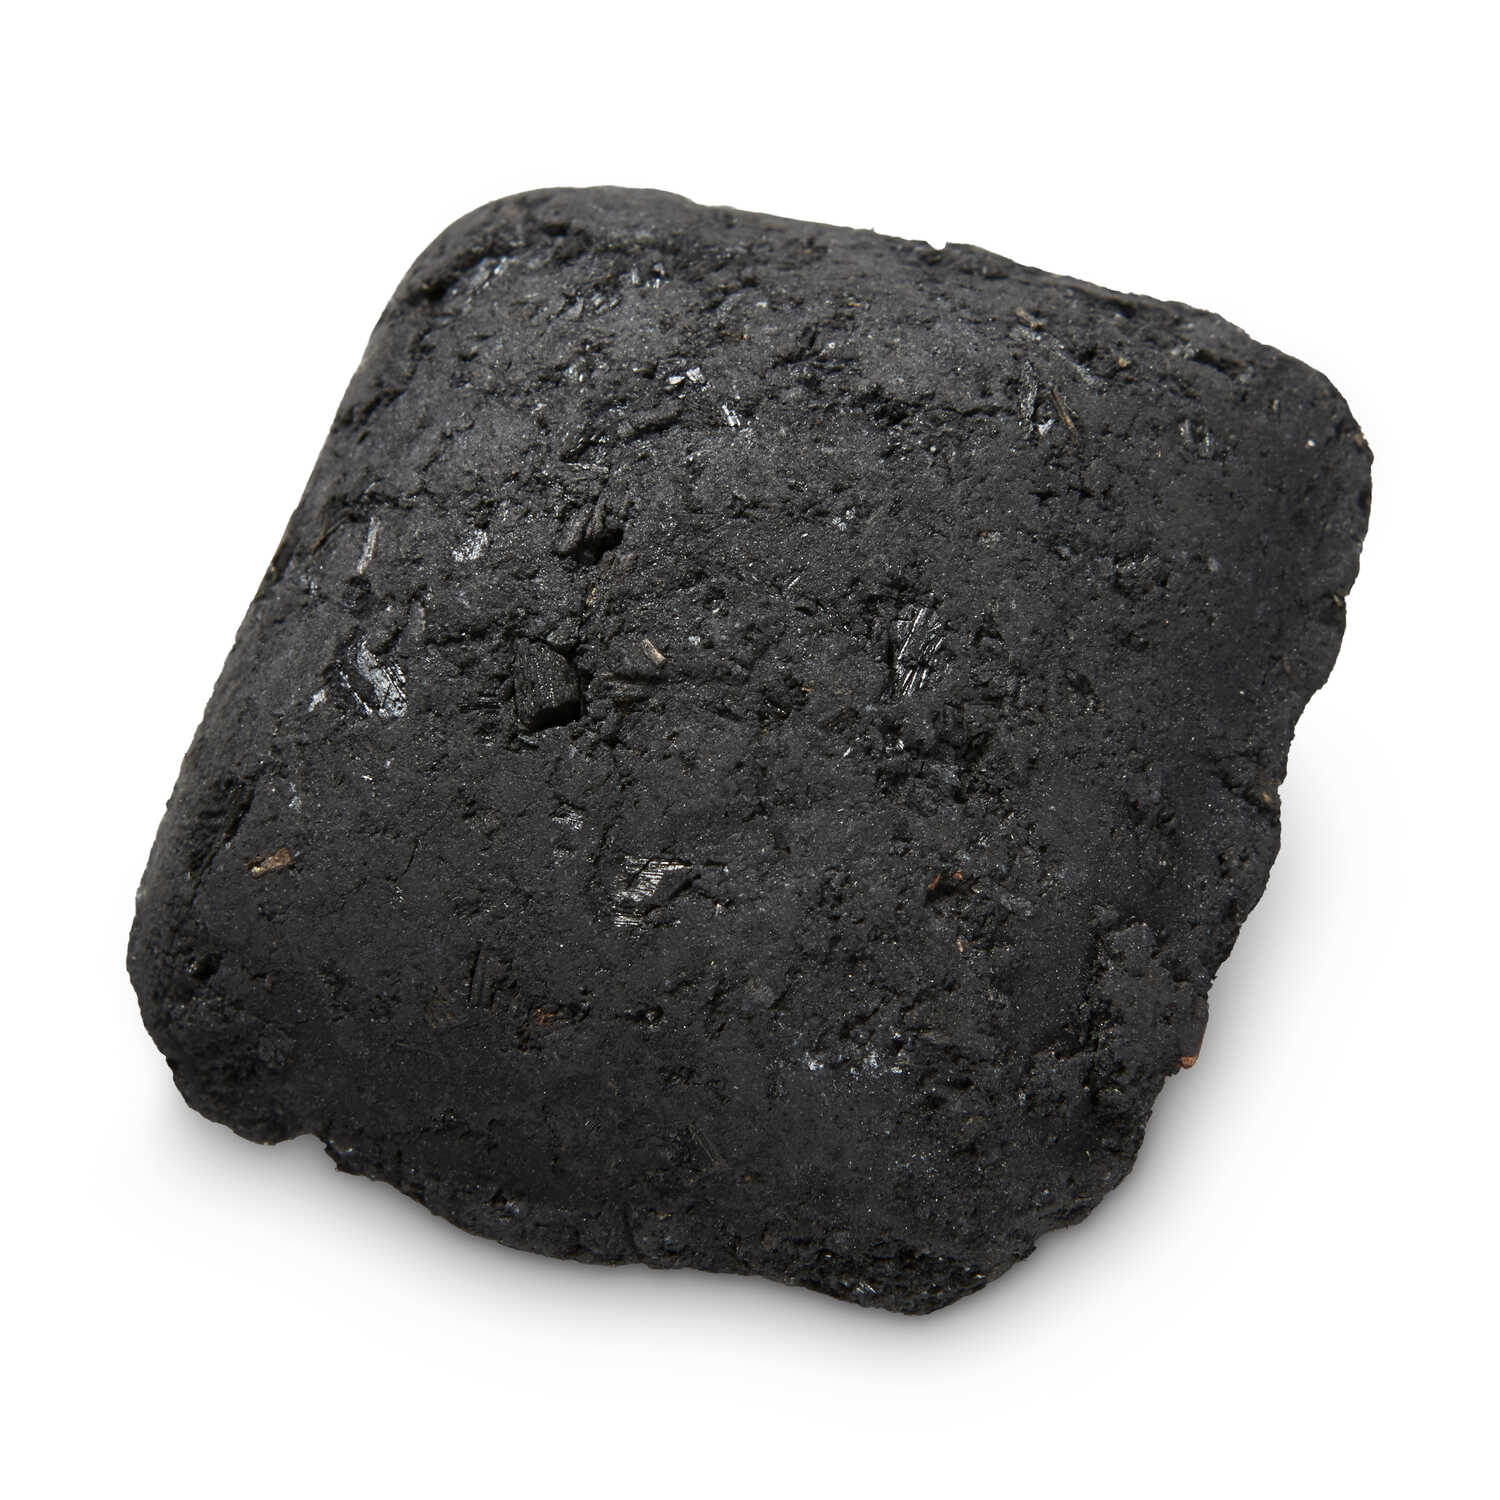 Weber  Hardwood  Charcoal Briquettes  20 lbs.